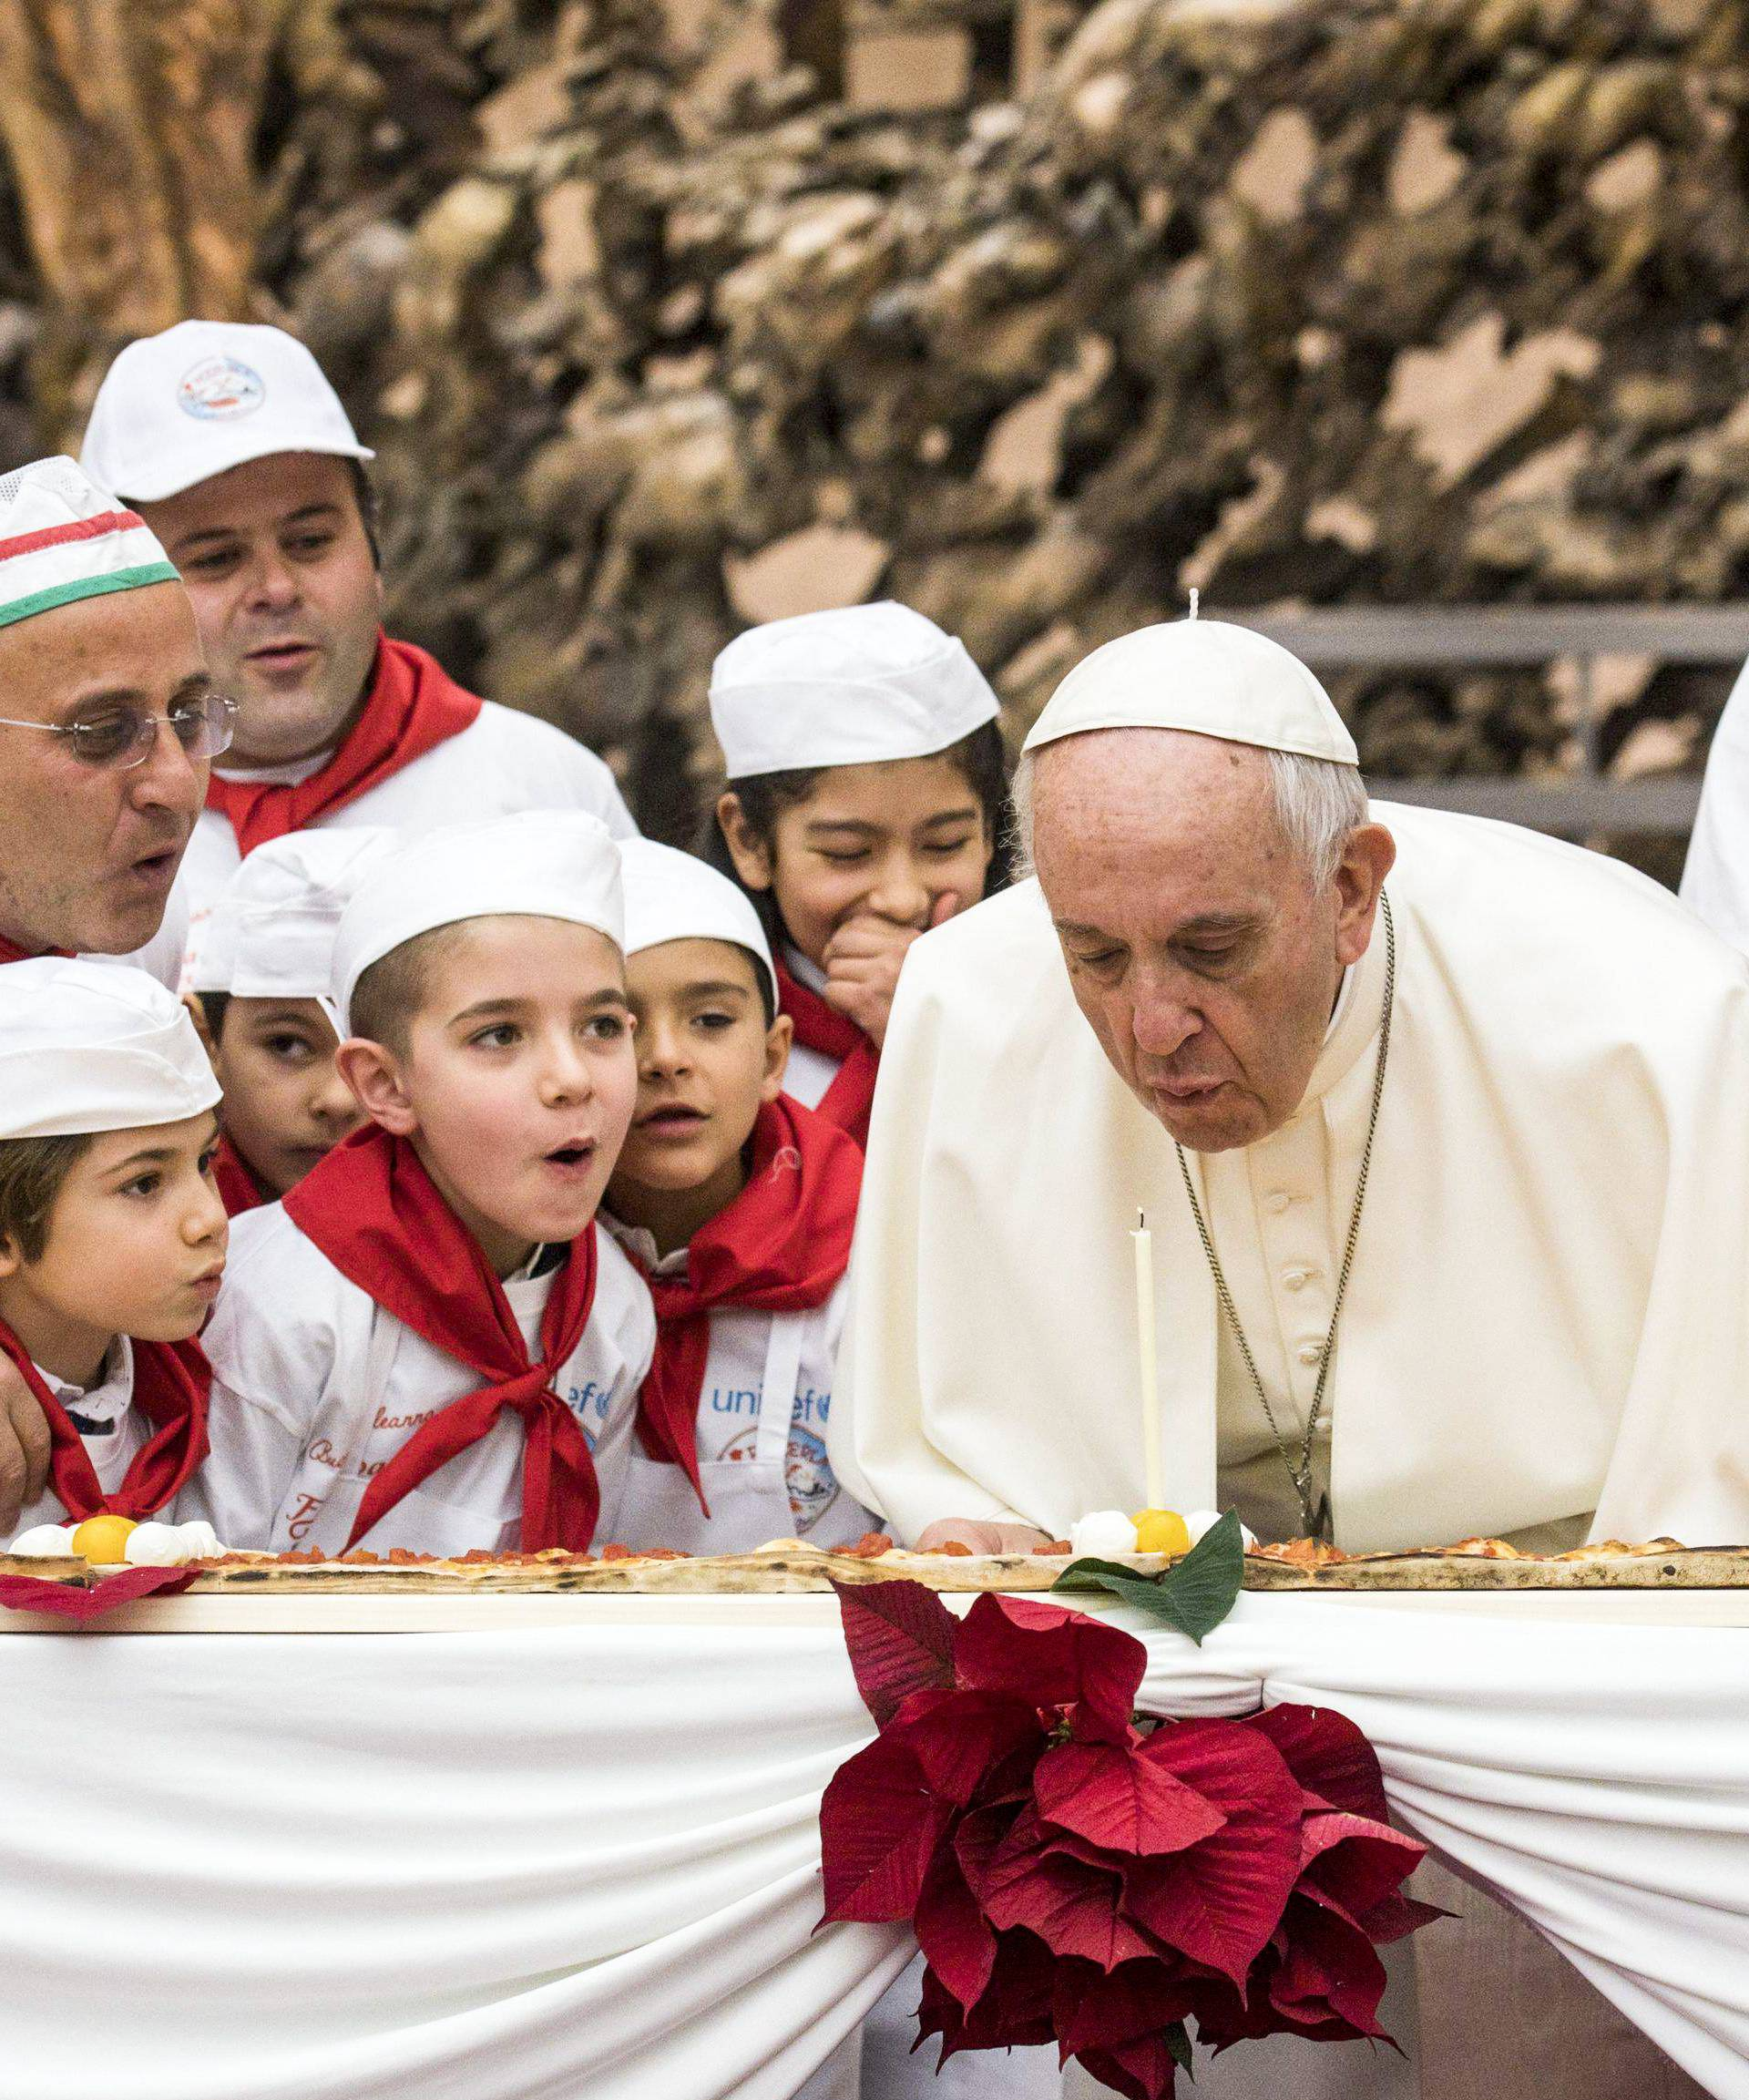 December 17, 2017 : Pope Francis meets with children in the Paul VI hall during a private audience on the occasion of his 81st birthday at the Vatican.